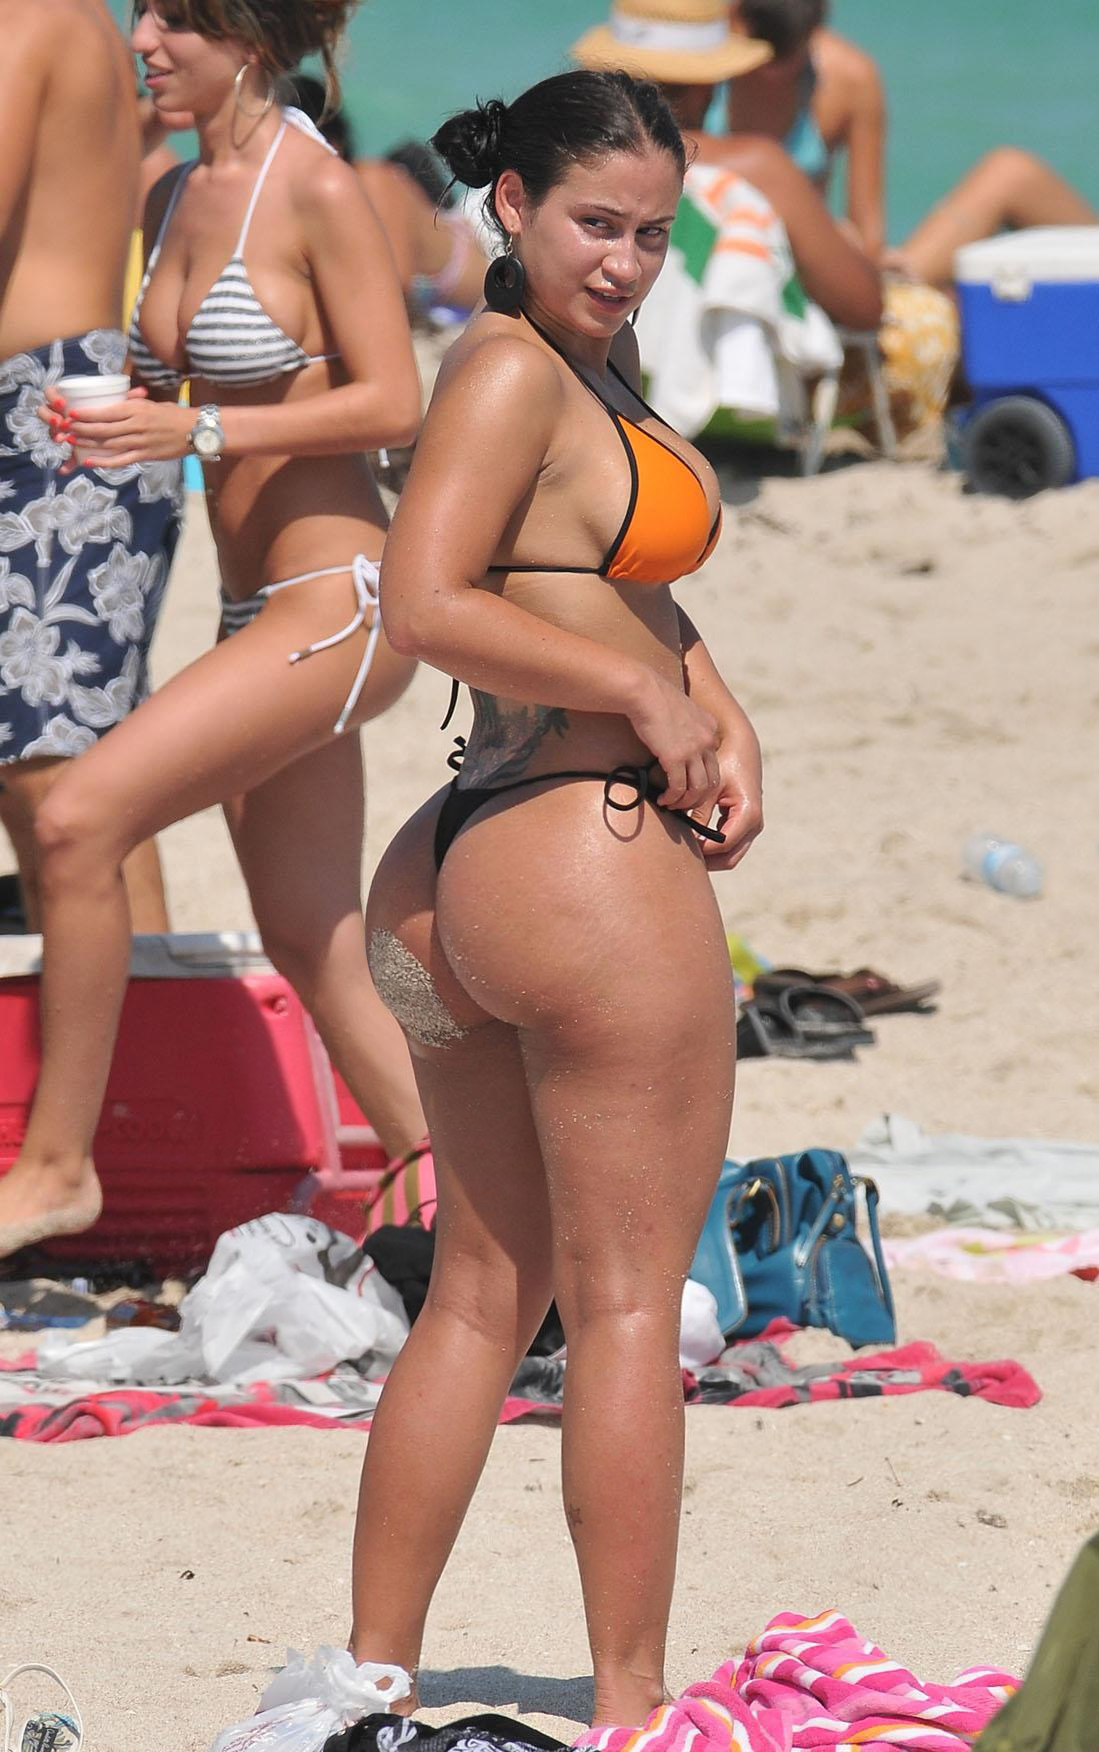 What phrase..., Big tits and ass at the beach serious?